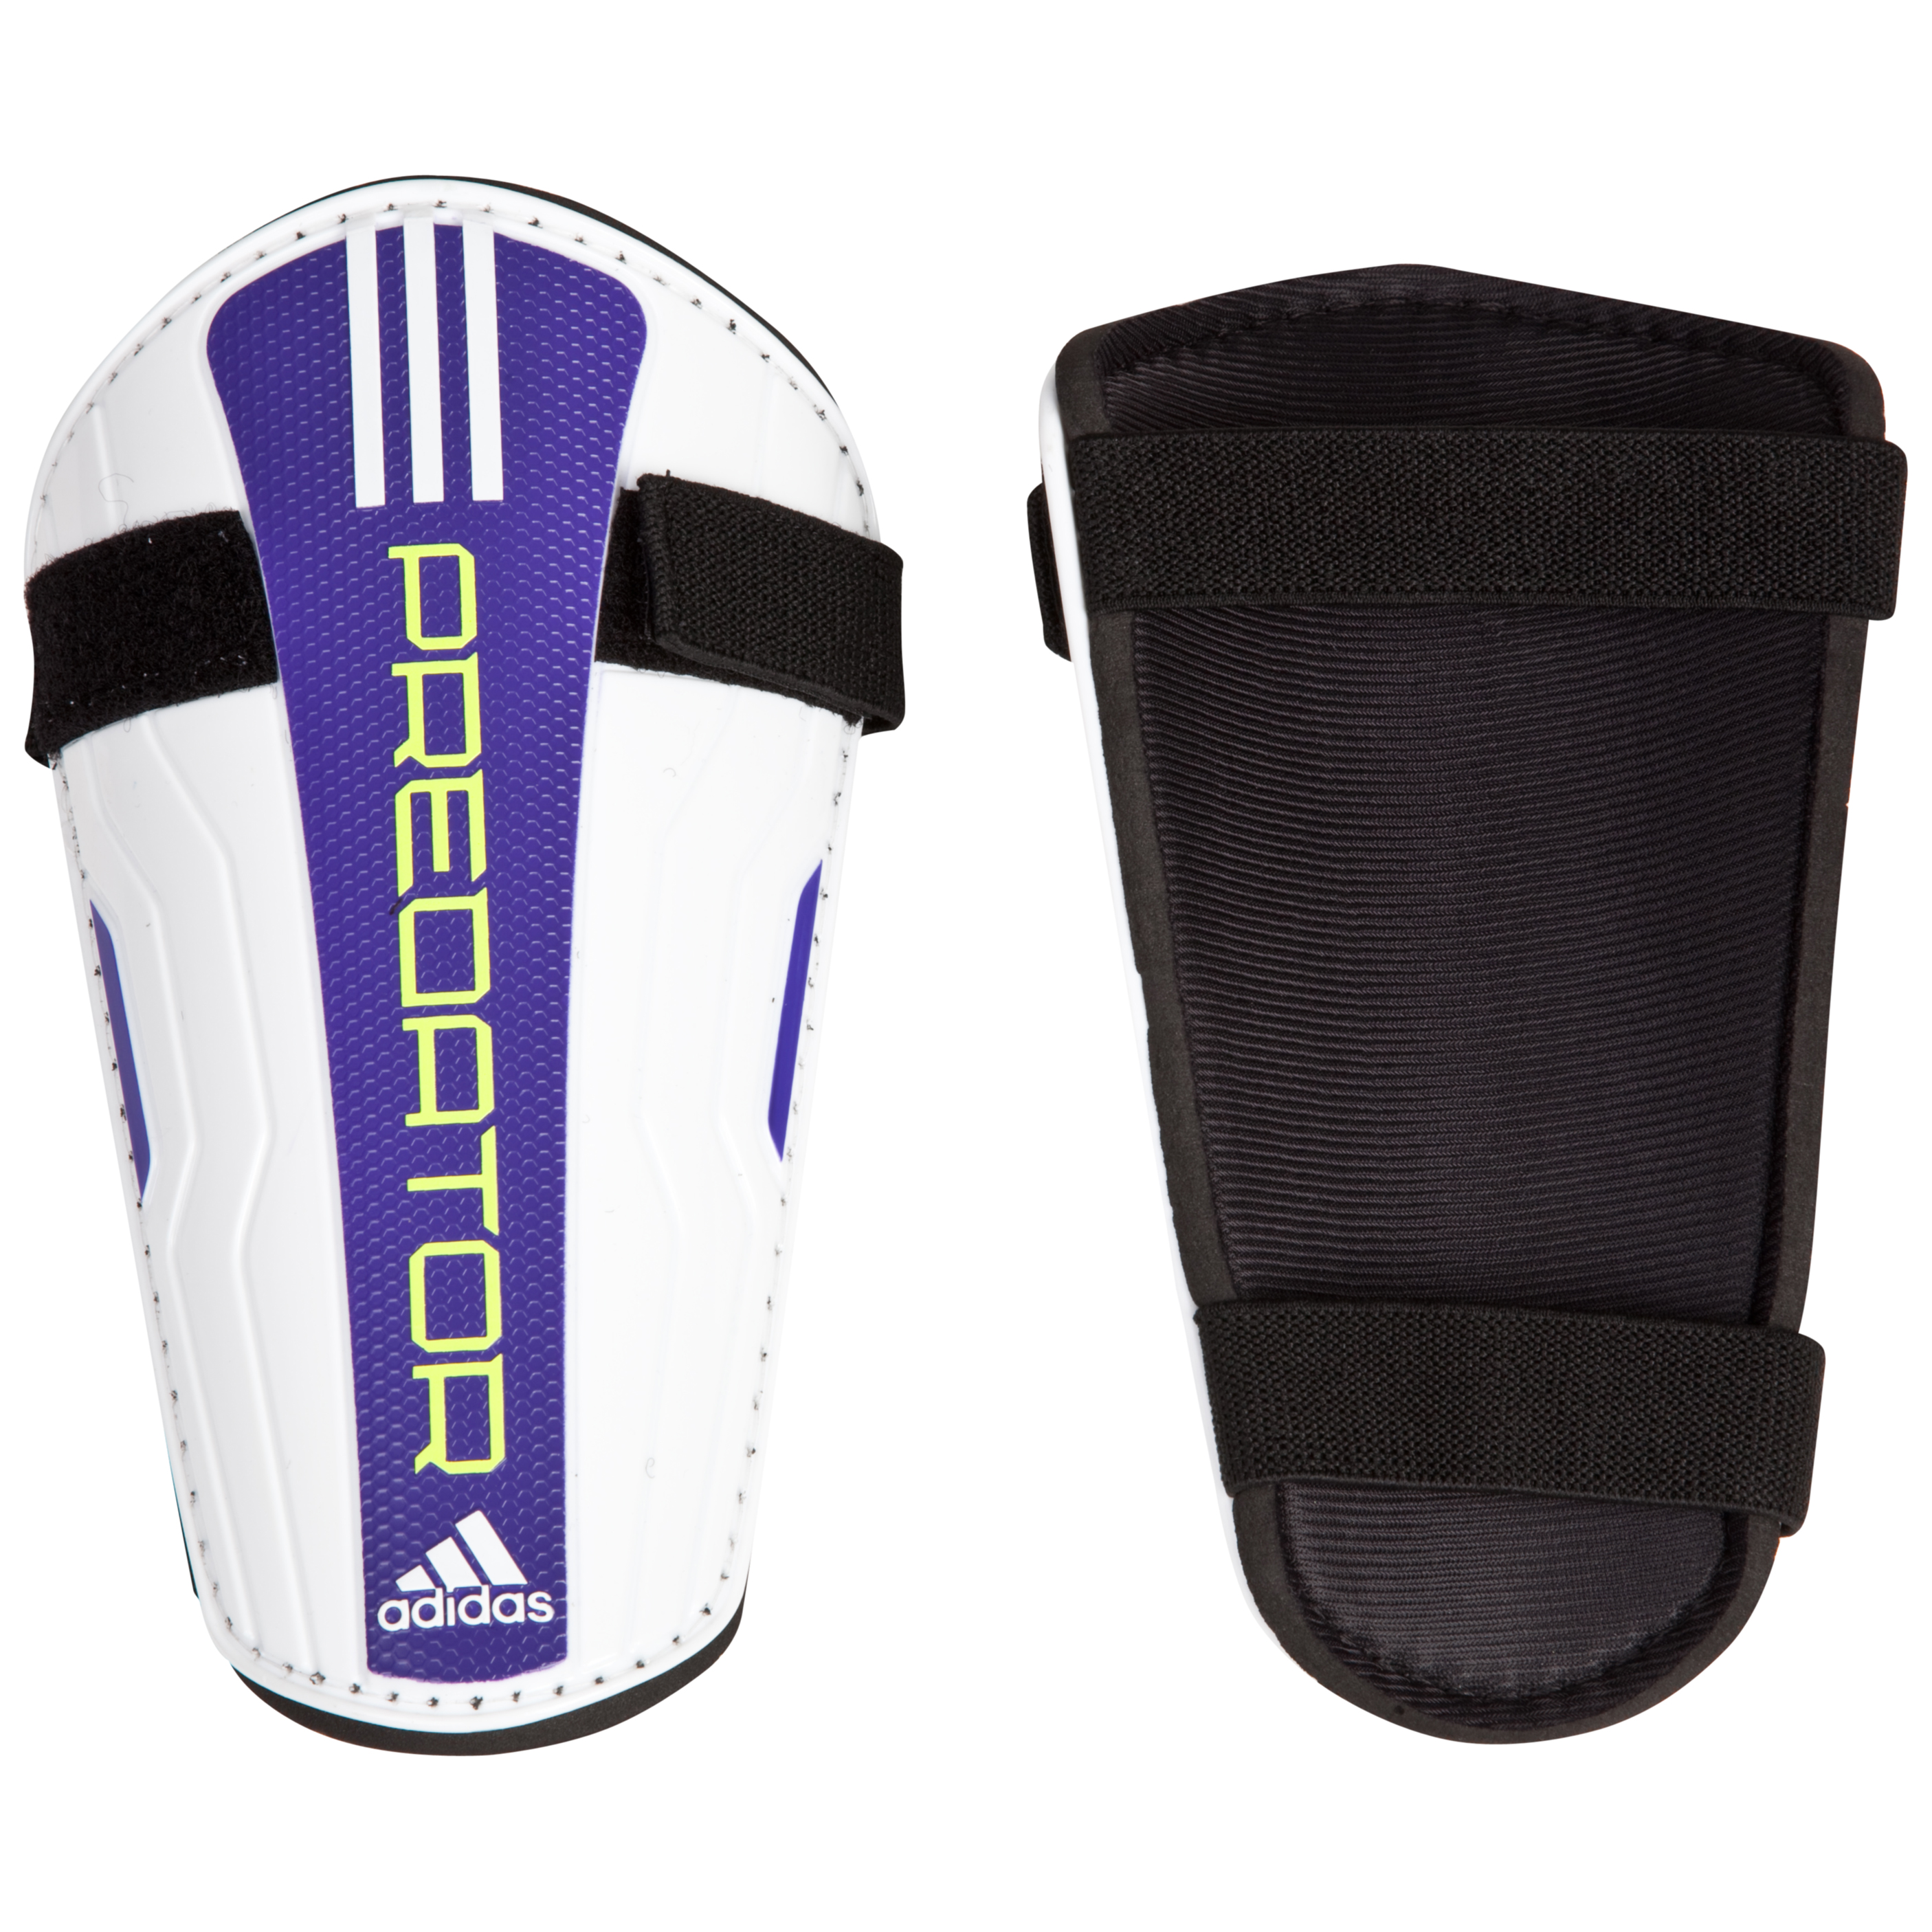 adidas Predator Lite Shinguard - White/Purple